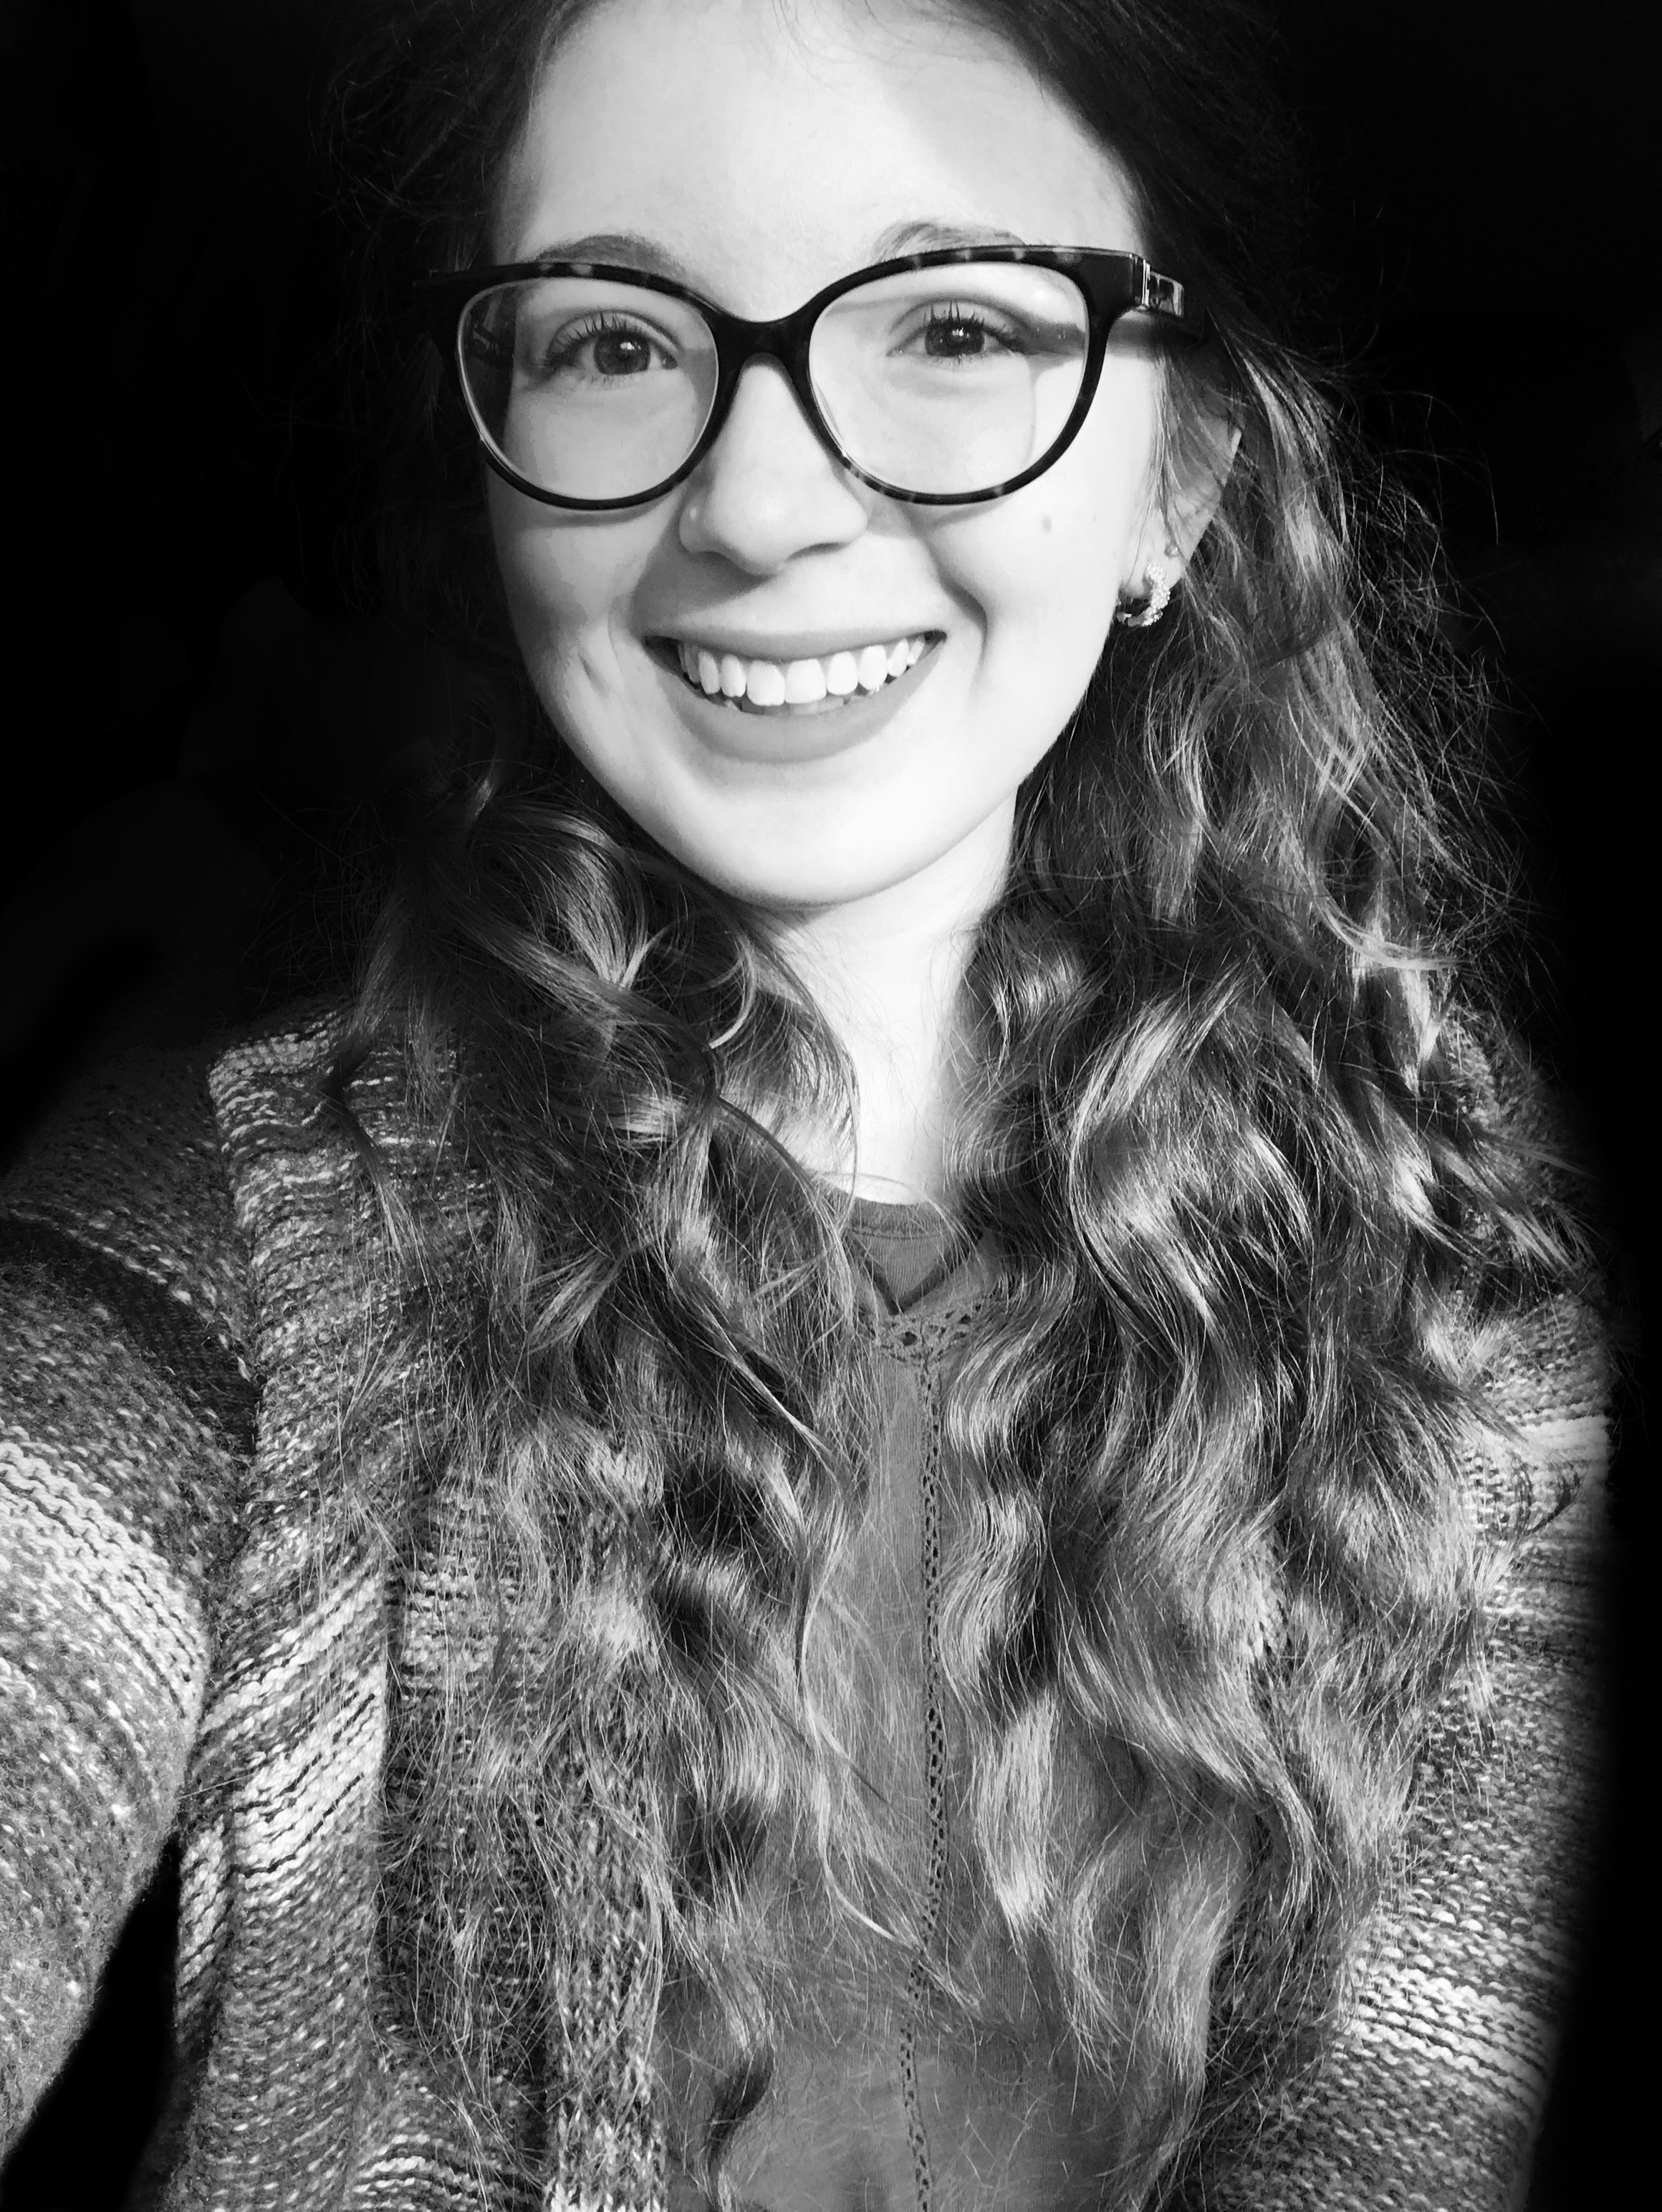 A black and white portrait of a young women seen from the waist up. She has vintage cat-eye style glasses with long wavy hair hanging below her chest. She is wearing a multi-coloured striped cardigan. The subject is holding one arm out toward the camera. The background is solid black.